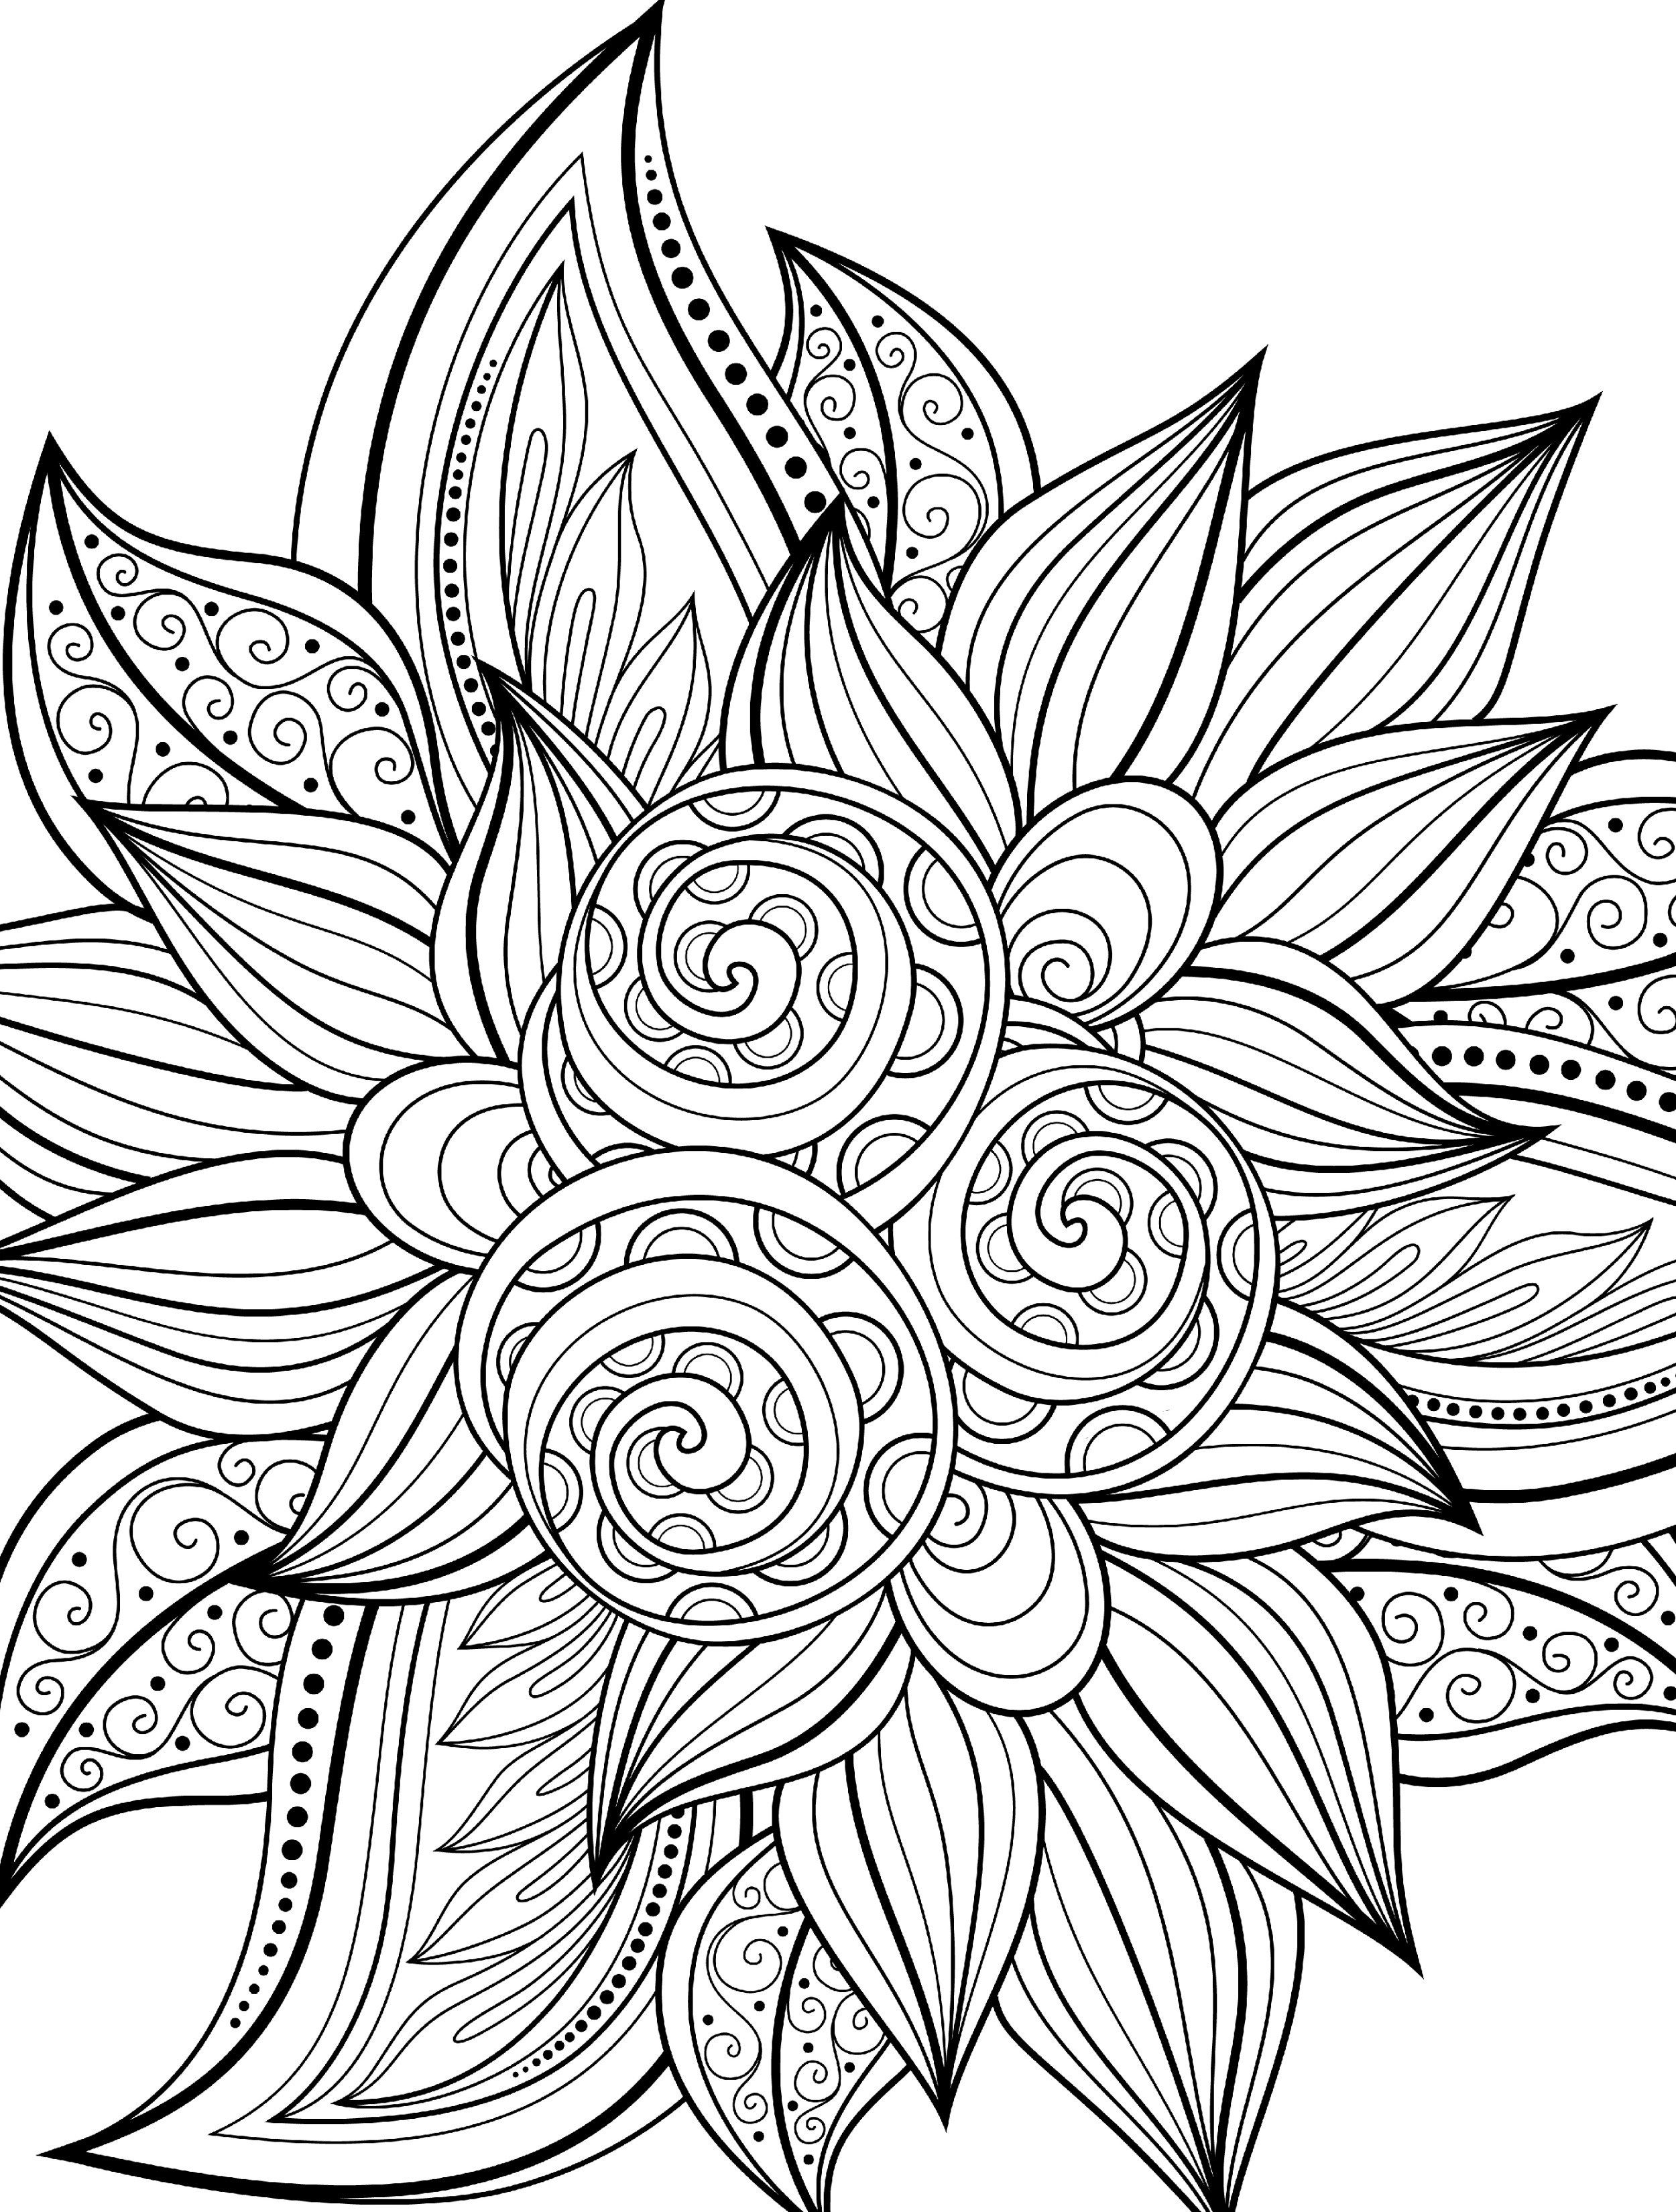 Coloring pages 6 year olds - 10 Free Printable Holiday Adult Coloring Pages